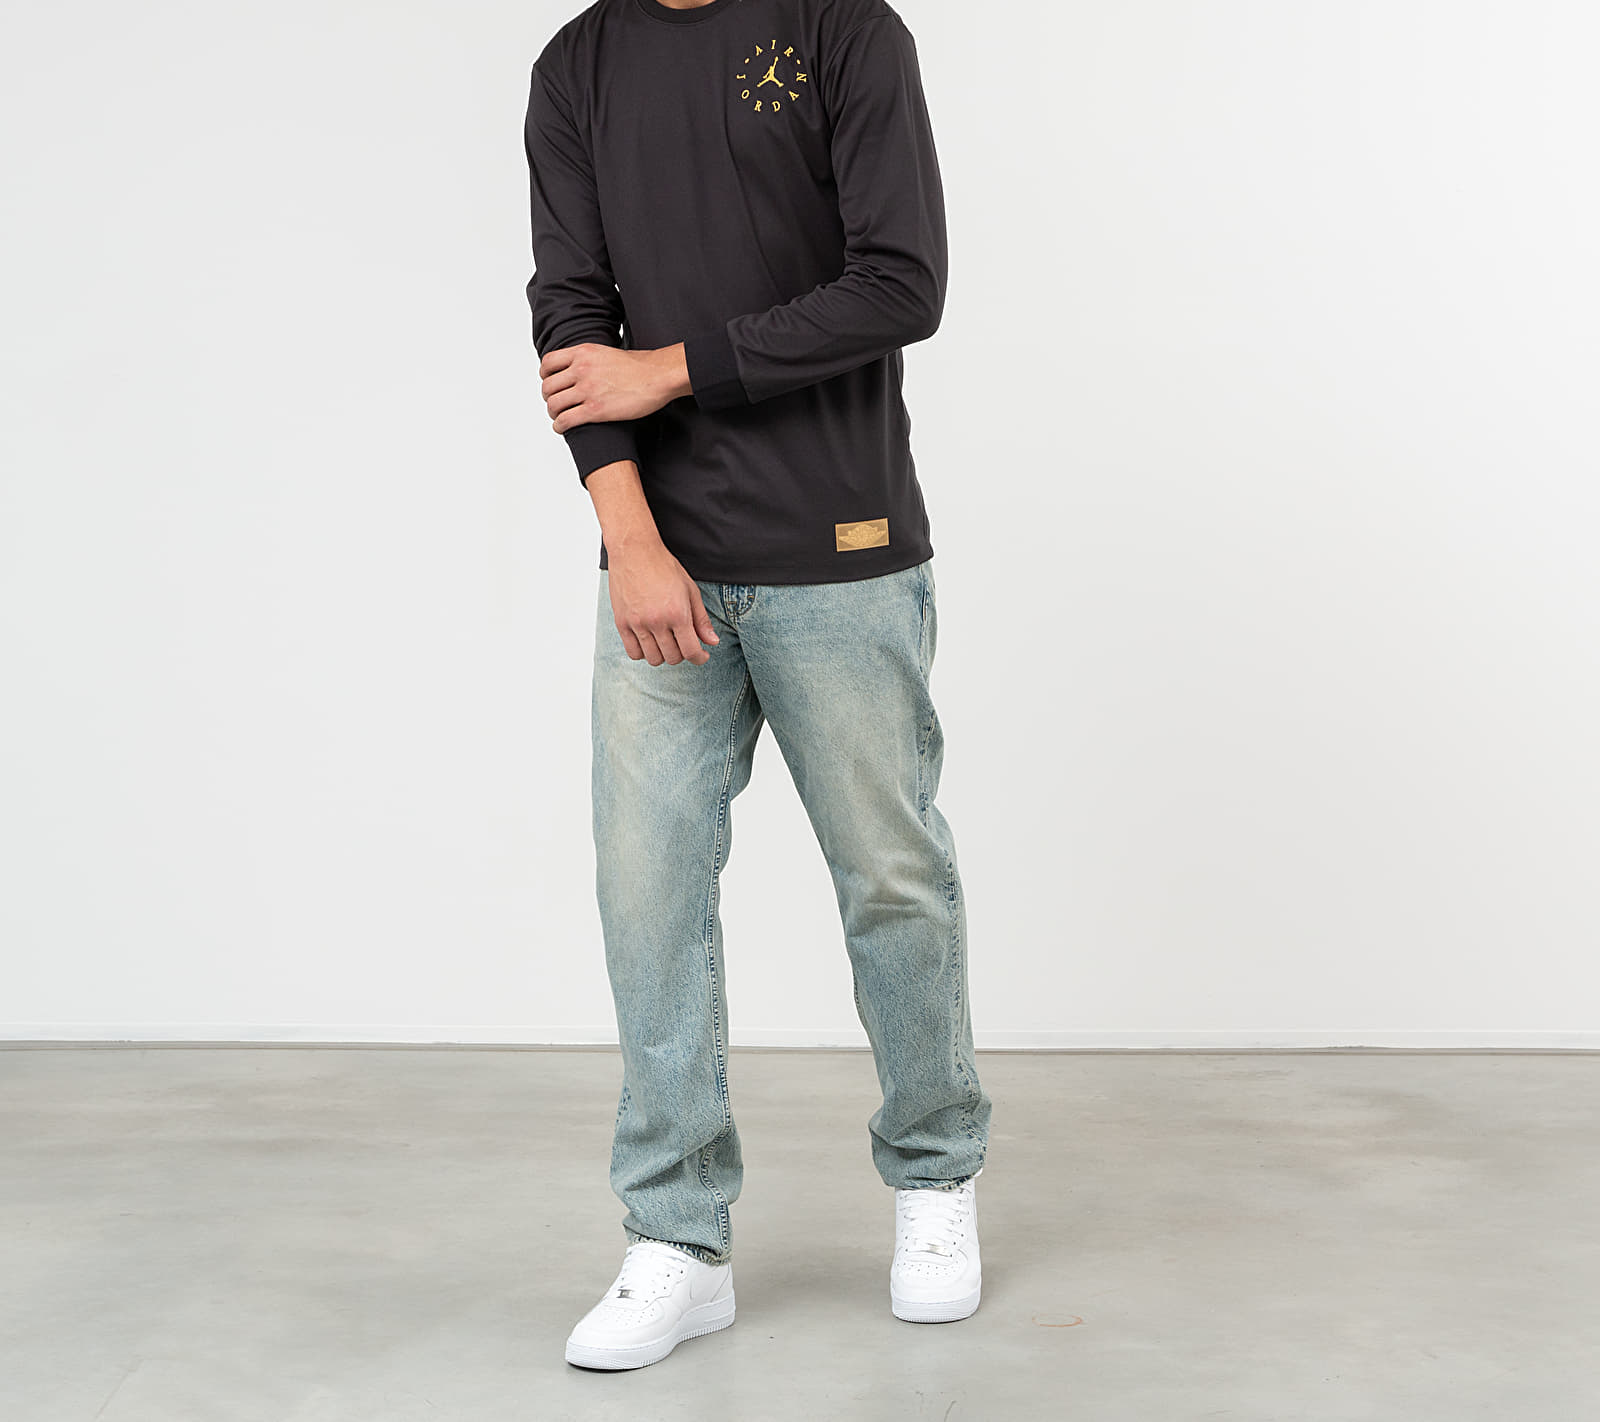 Jordan Remastered Sueded Longsleeve Tee Black/ Black/ Metallic Gold